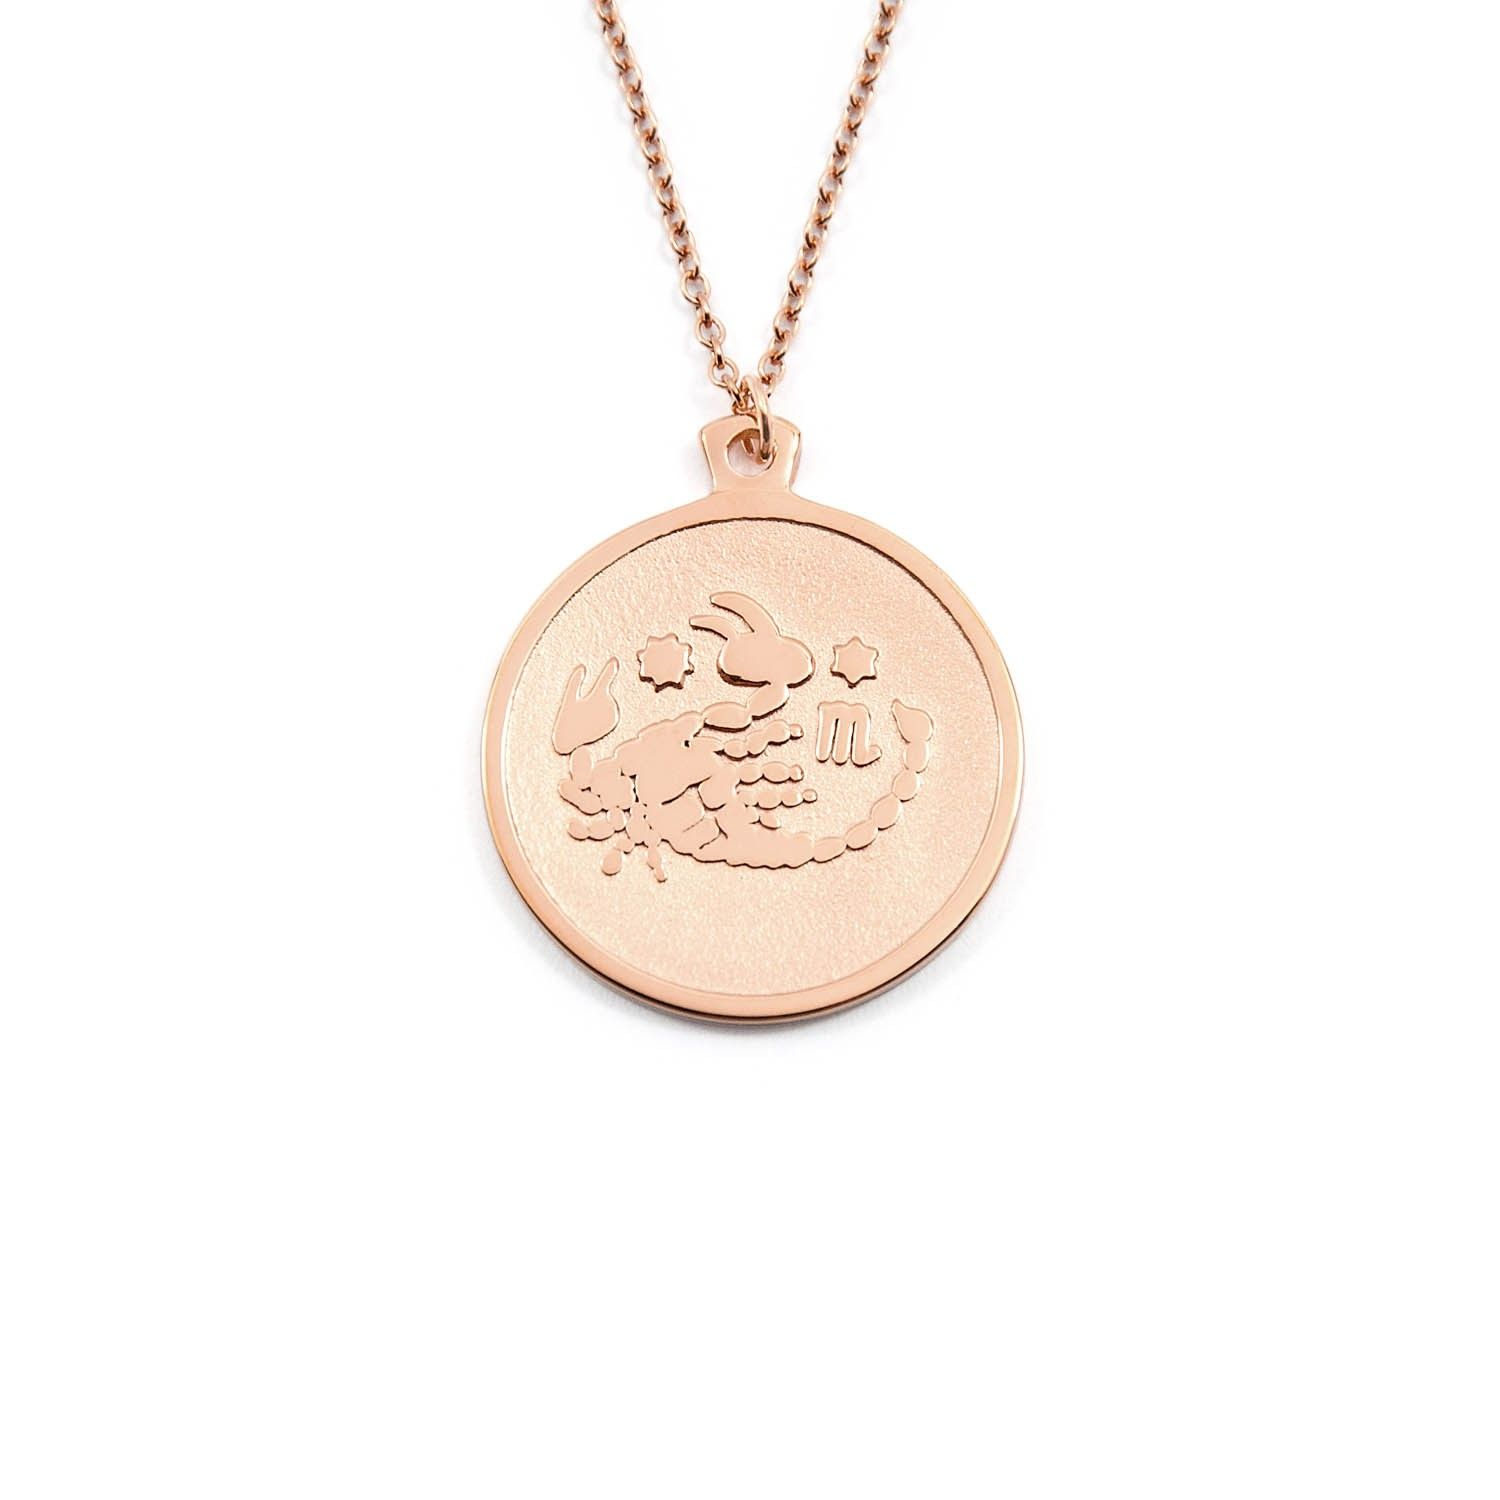 Scorpio rose gold anna saccone so pretty bling bling scorpio necklace by anna saccone rose gold s mozeypictures Images